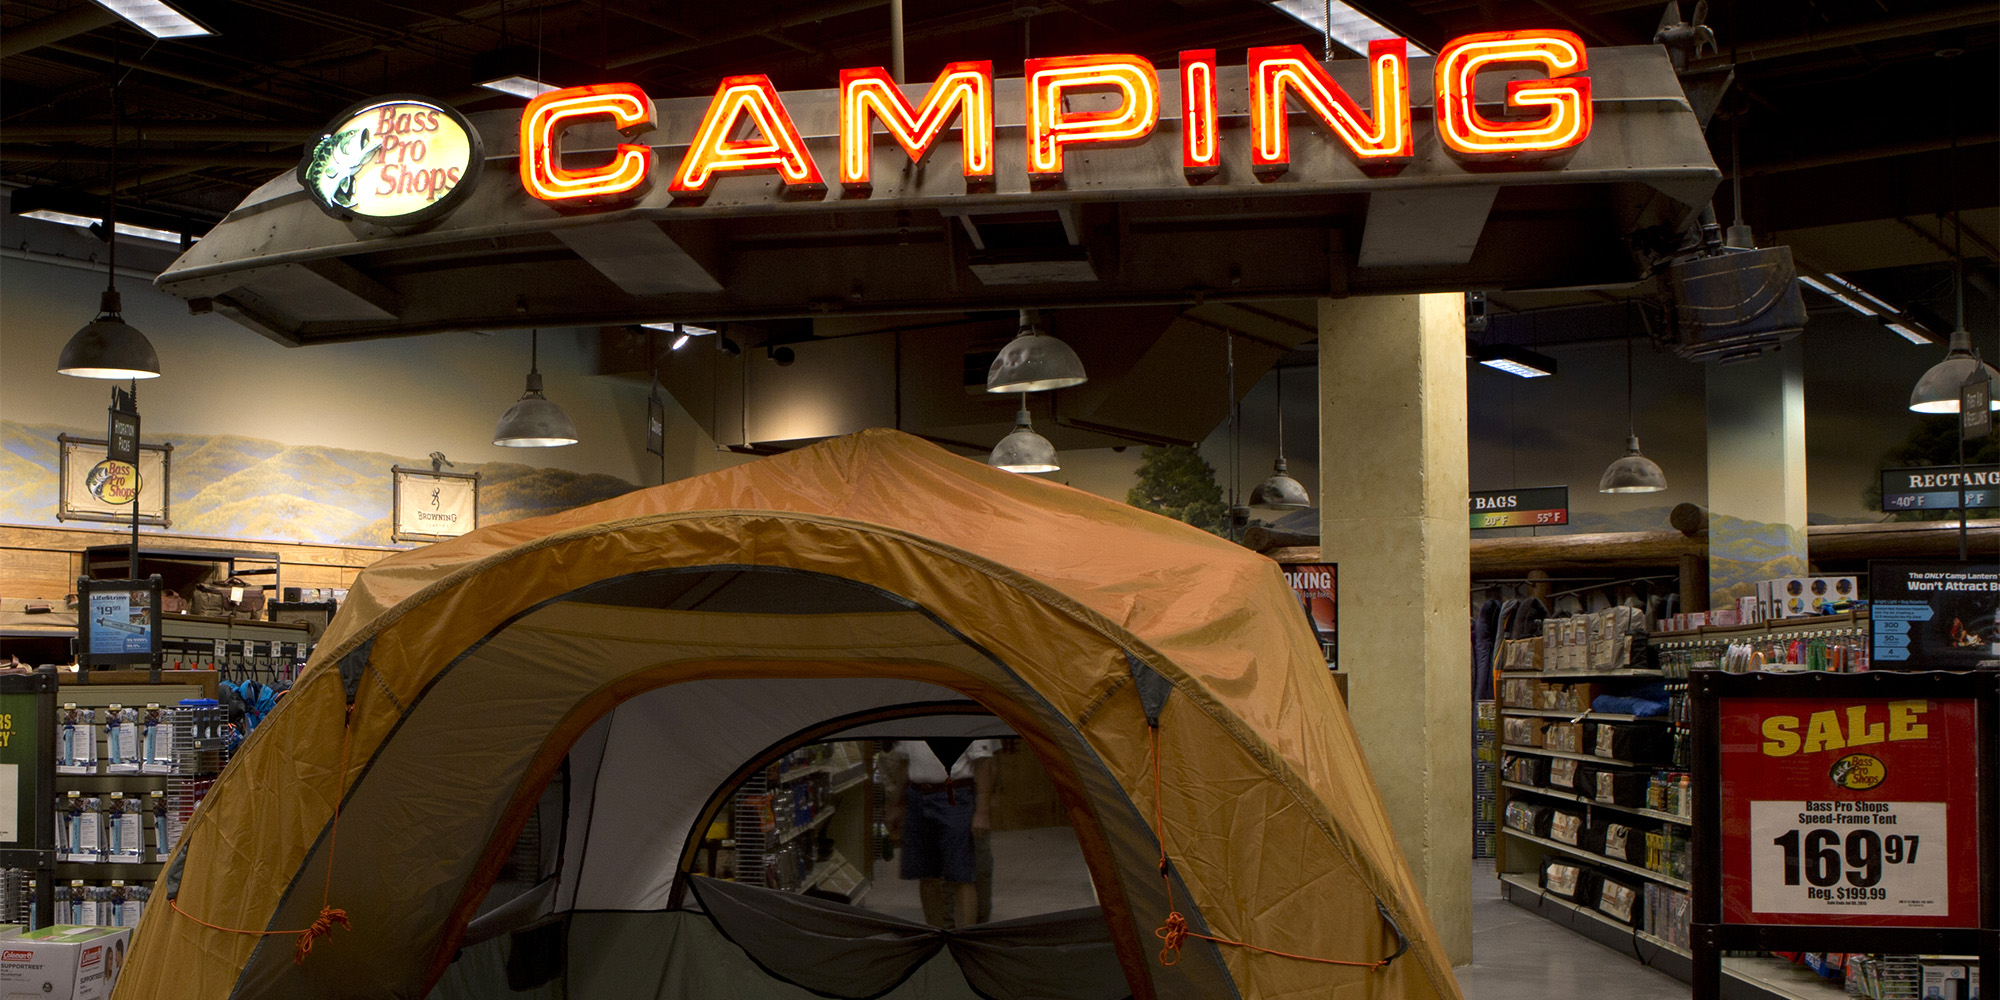 Camping sign_2000x1000